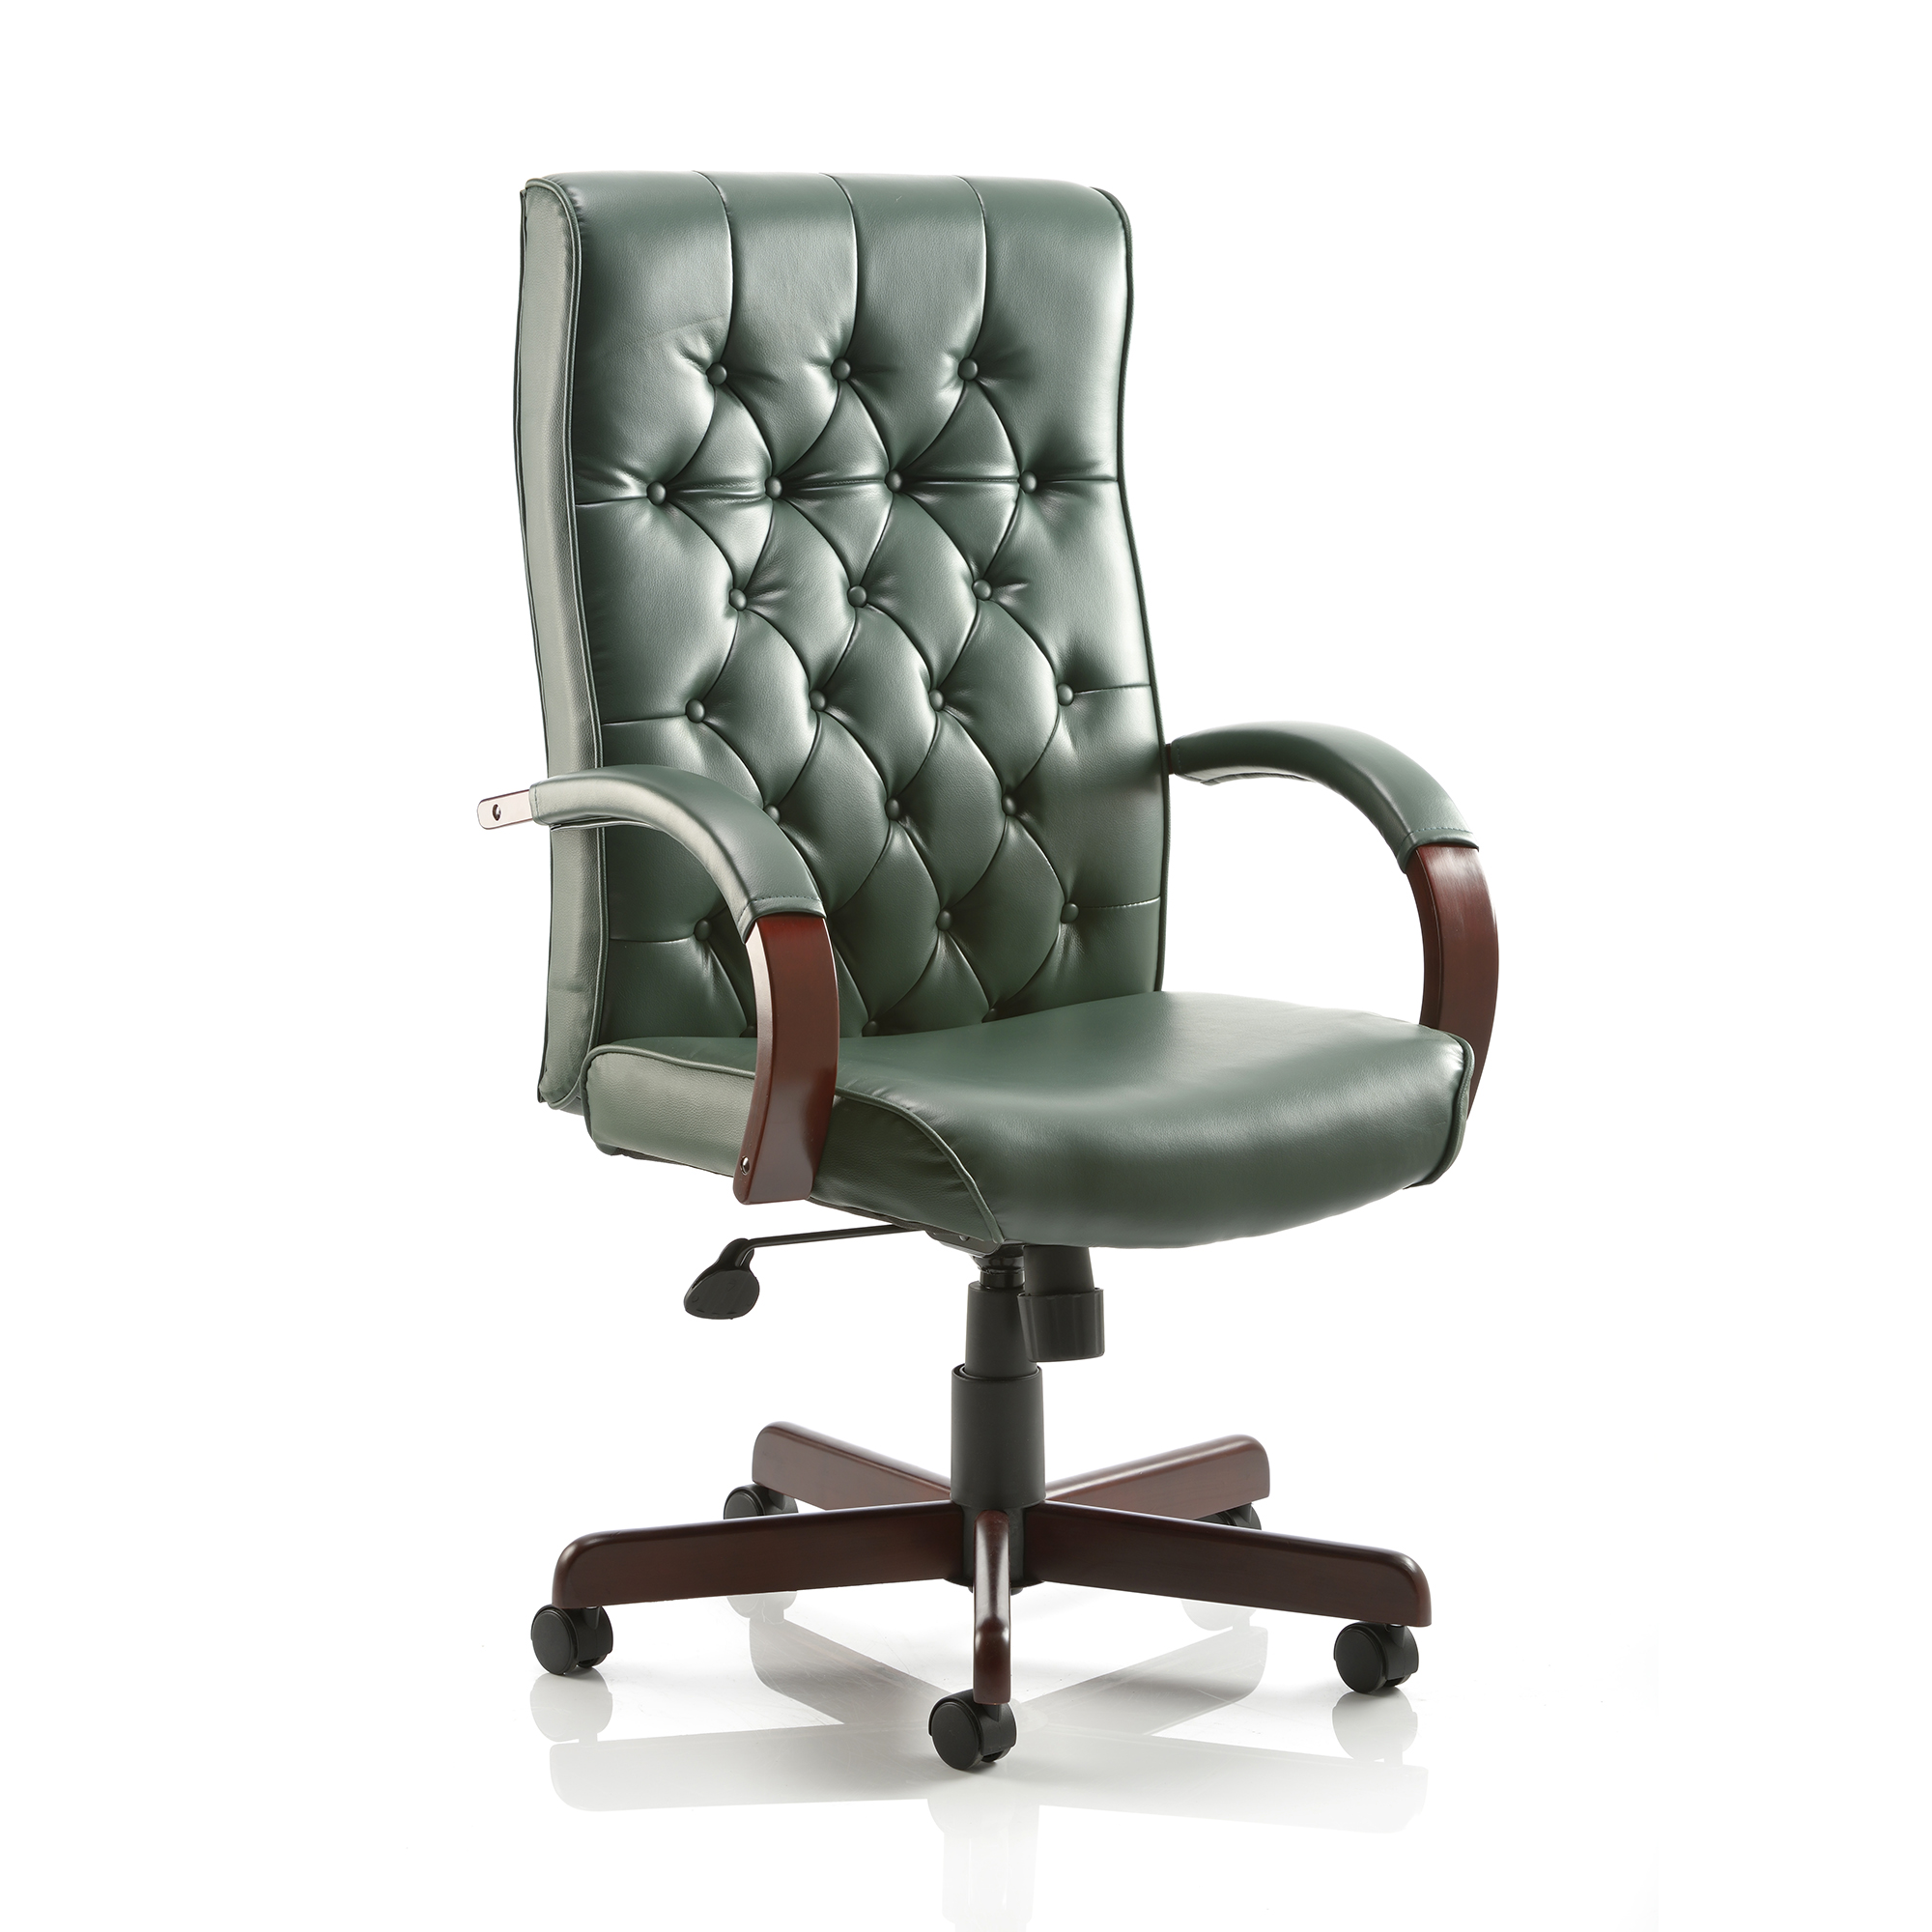 Executive seating Trexus Chesterfield Executive Chair With Arms Leather Green Ref EX000006